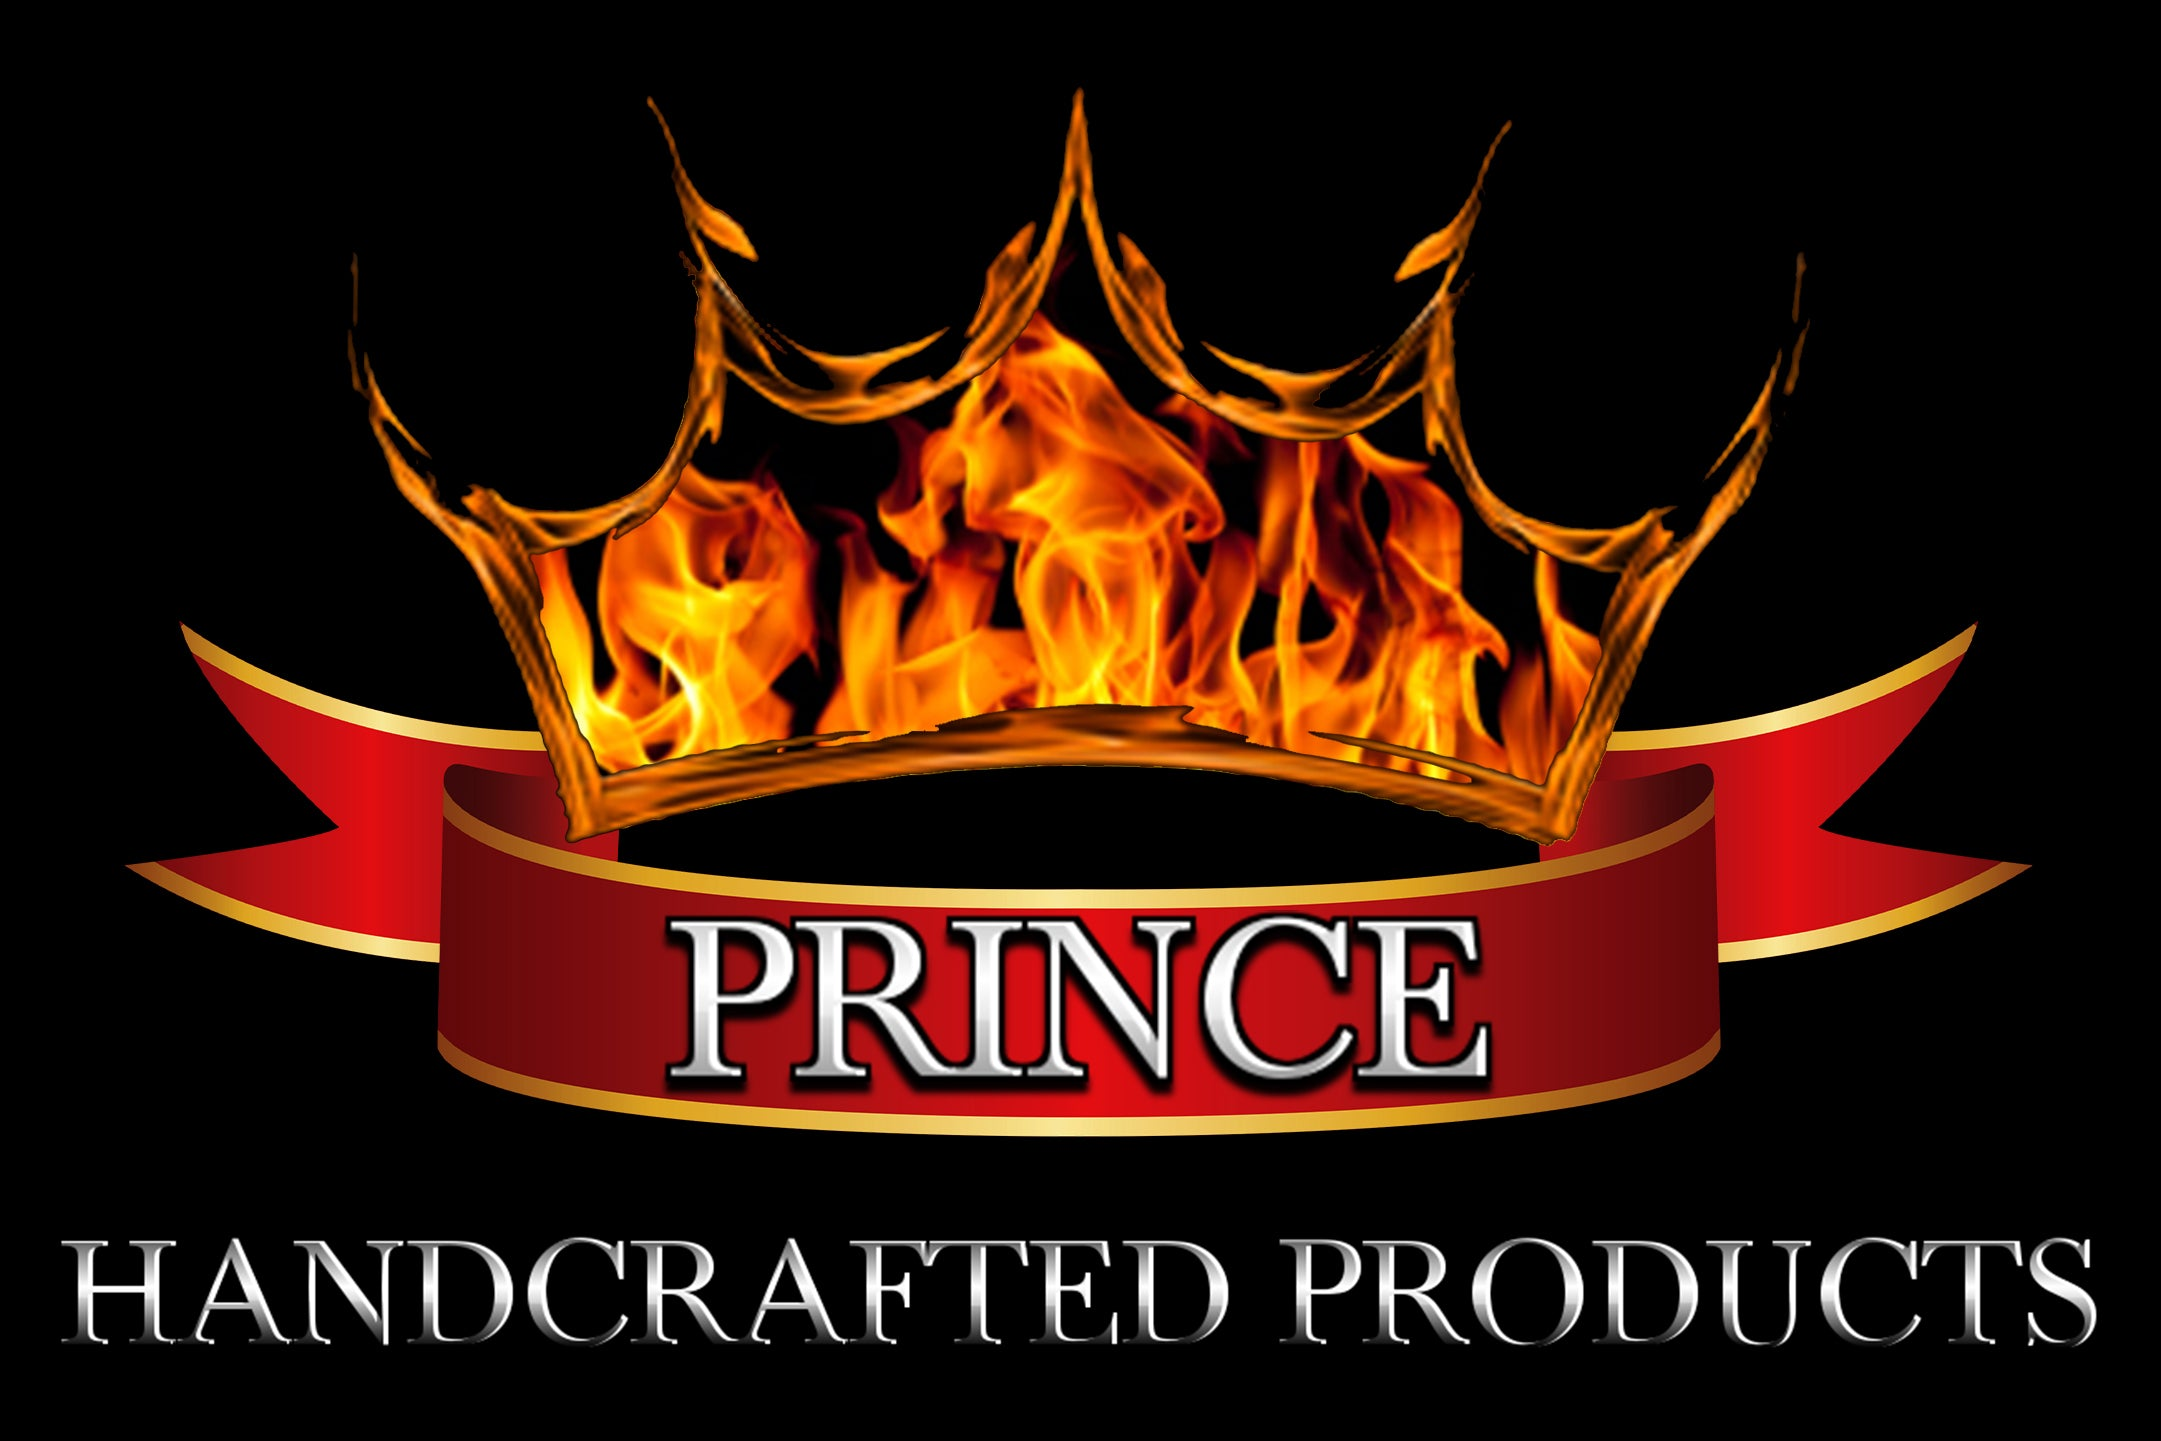 Prince Handcrafted Sauces